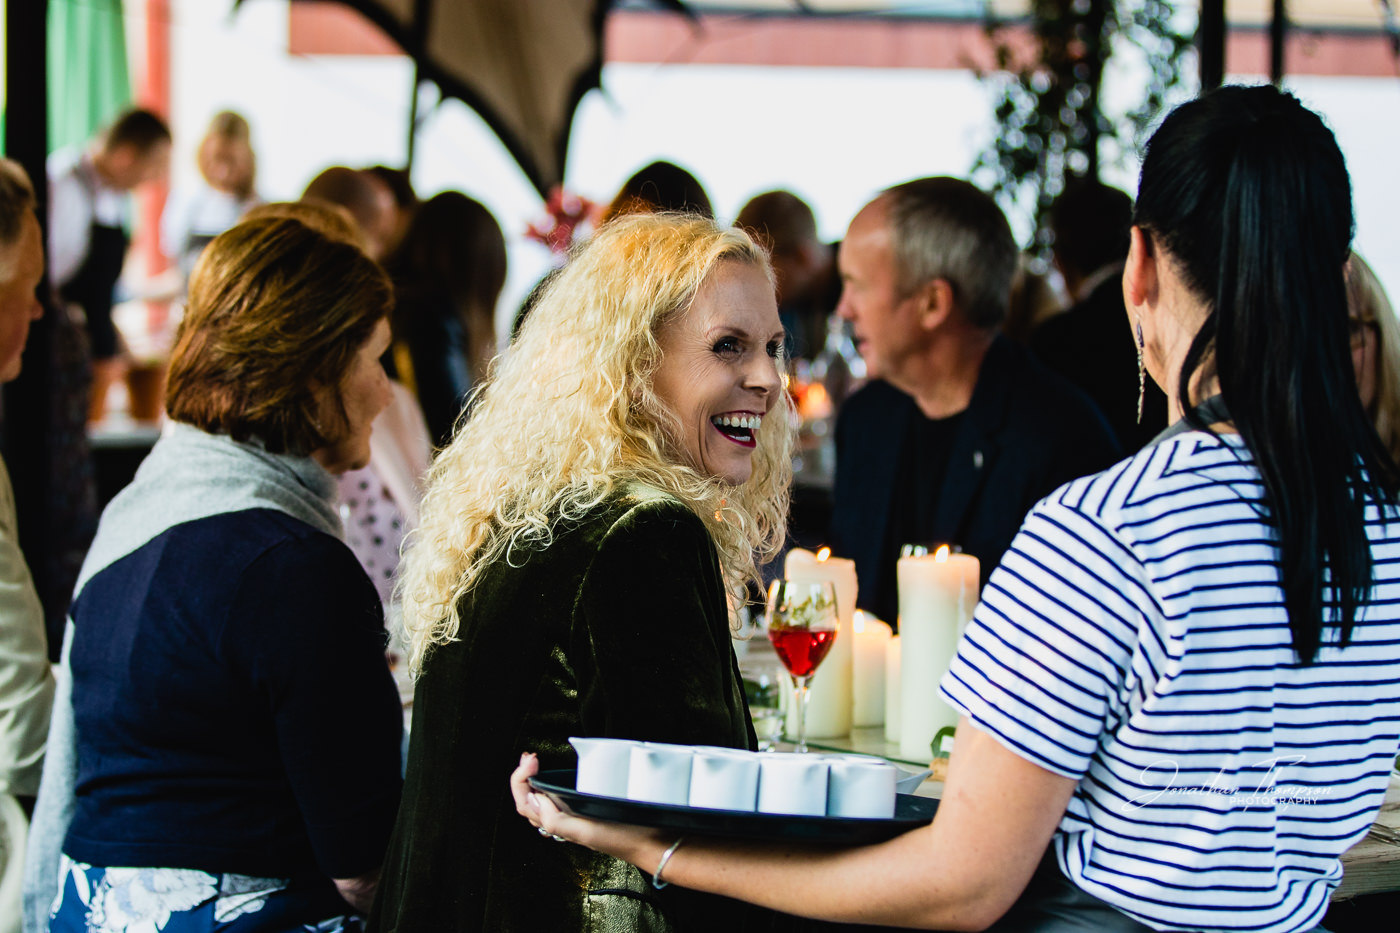 Blonde haired lady turns to her waitress with a big smile. In an outdoor dining event. Chester Zoo